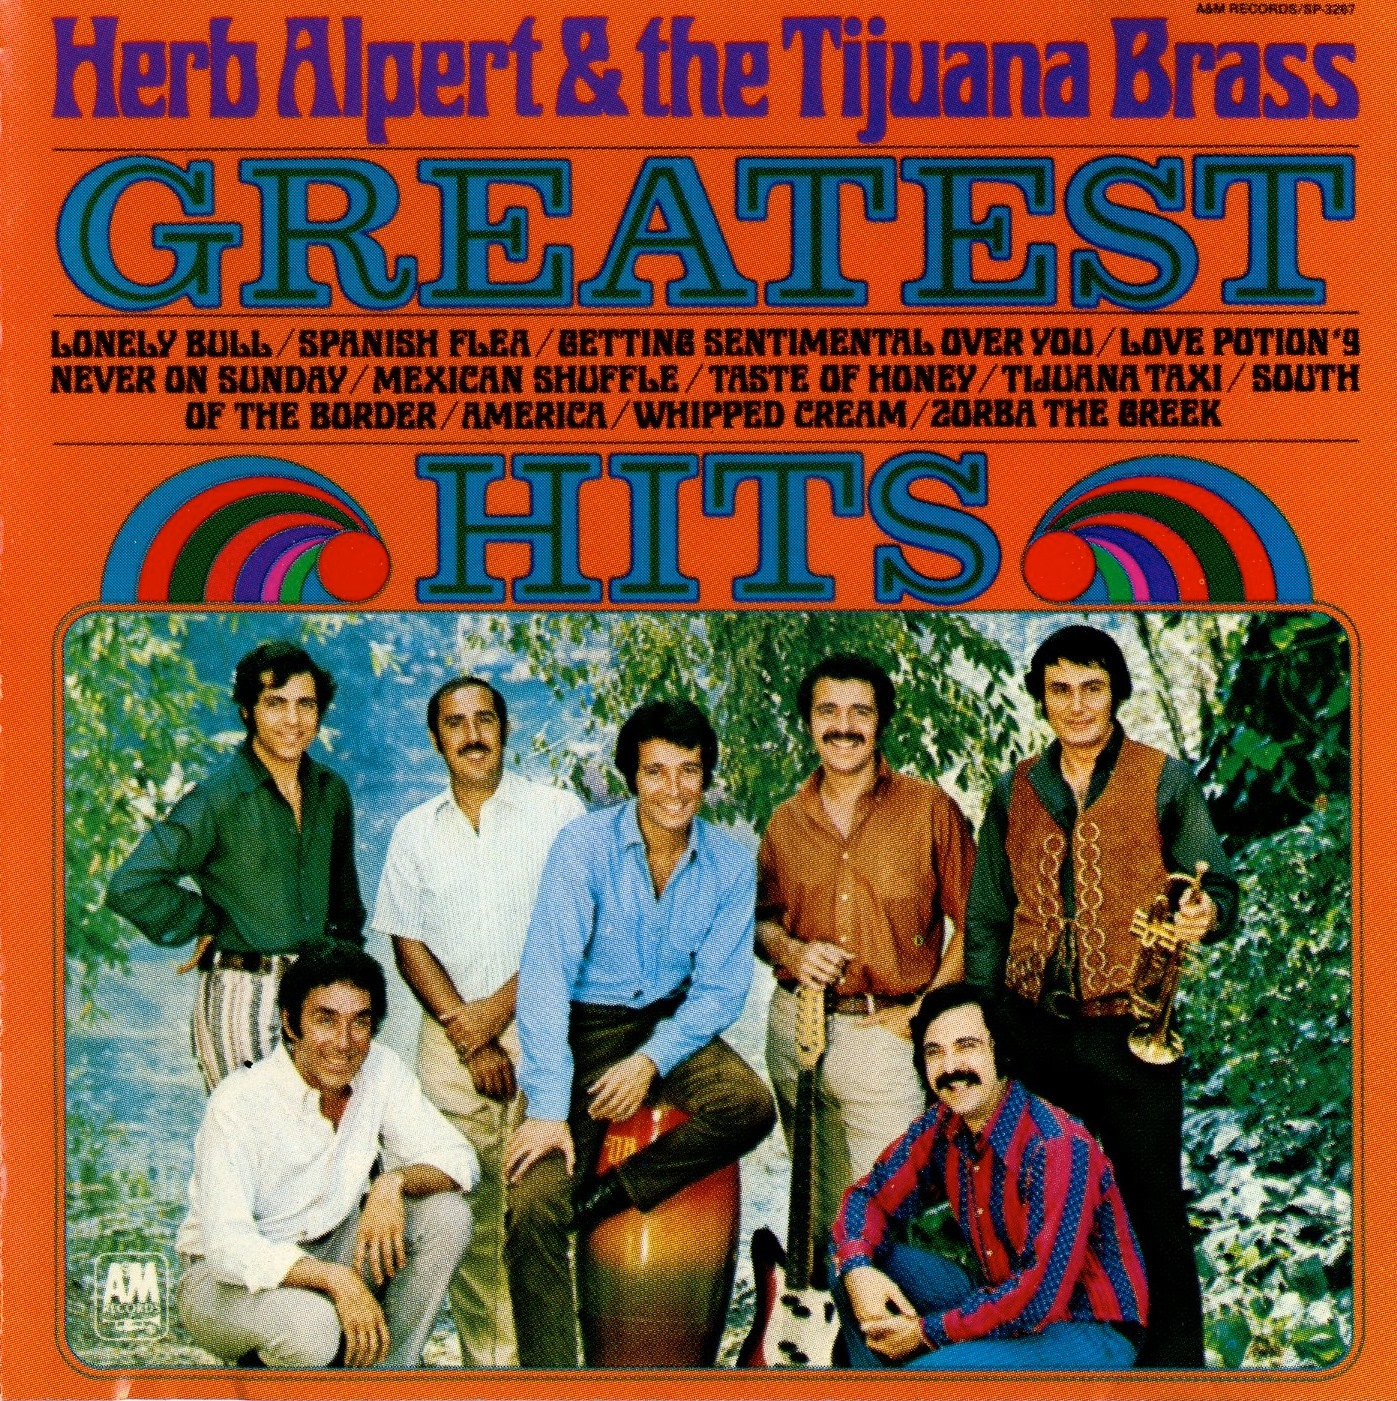 Copertina di Herb Alpert & The Tijuana Brass Greatest Hits